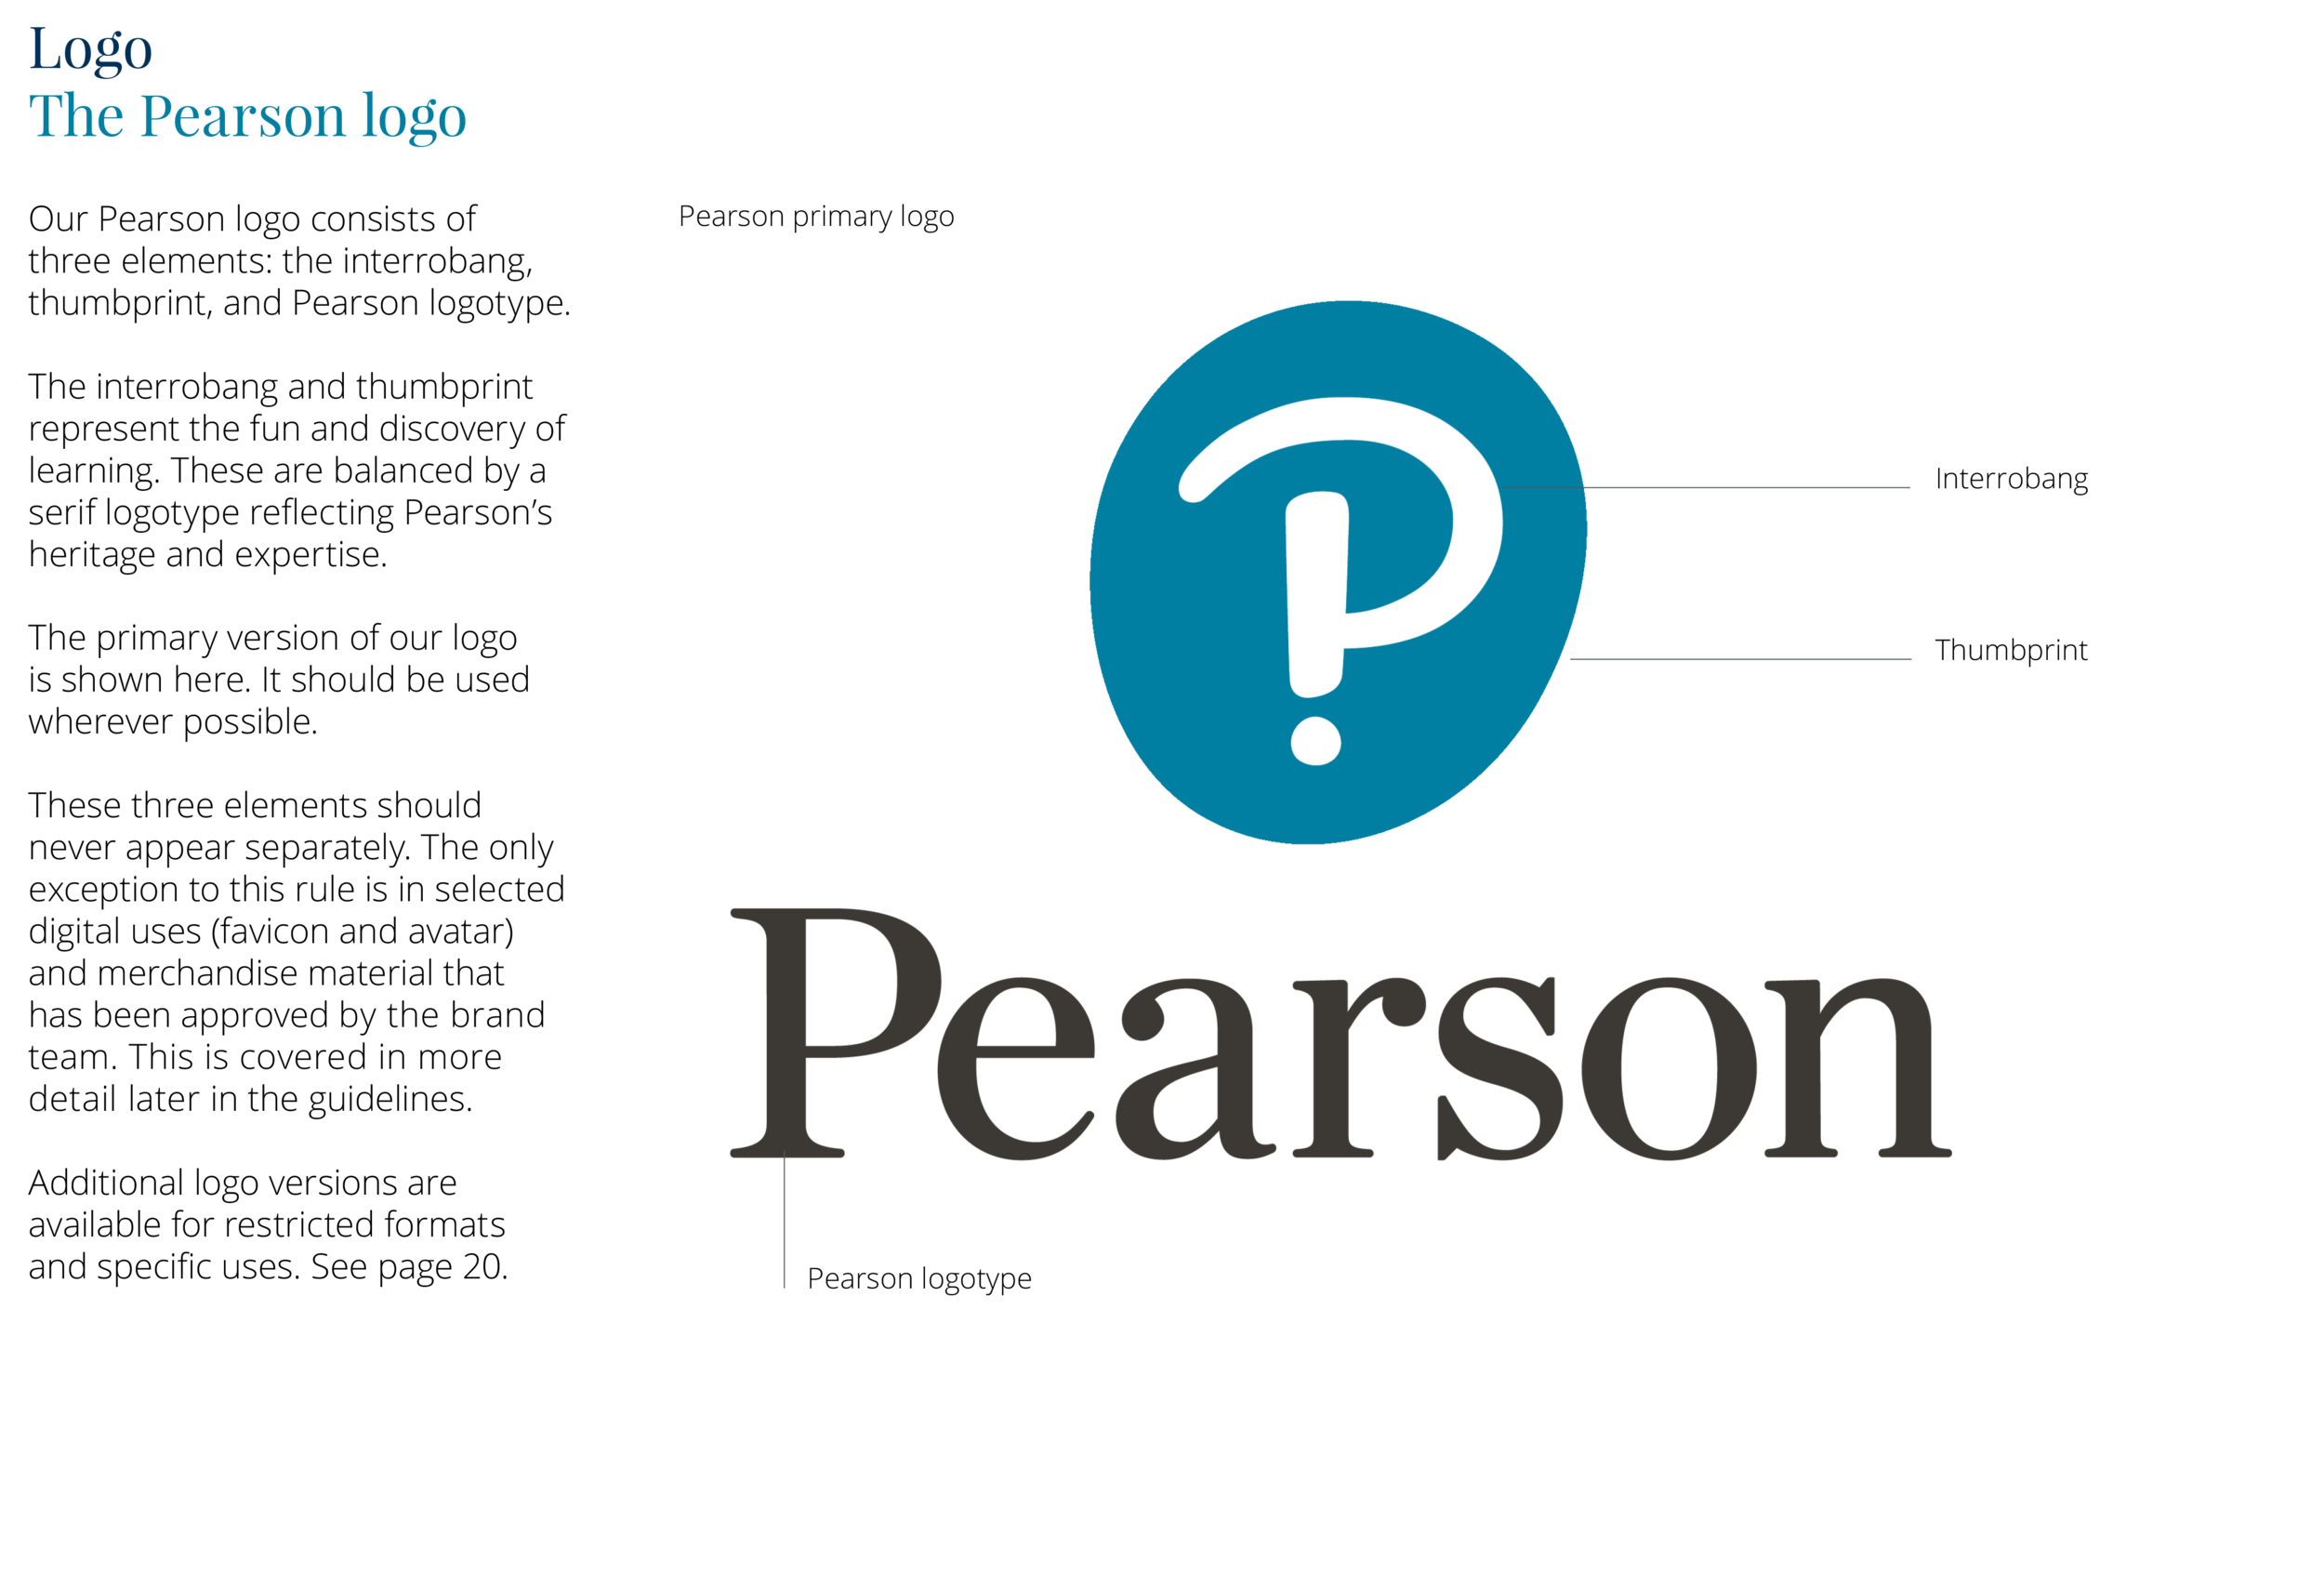 Pearson_Guidelines_Logo-1.png